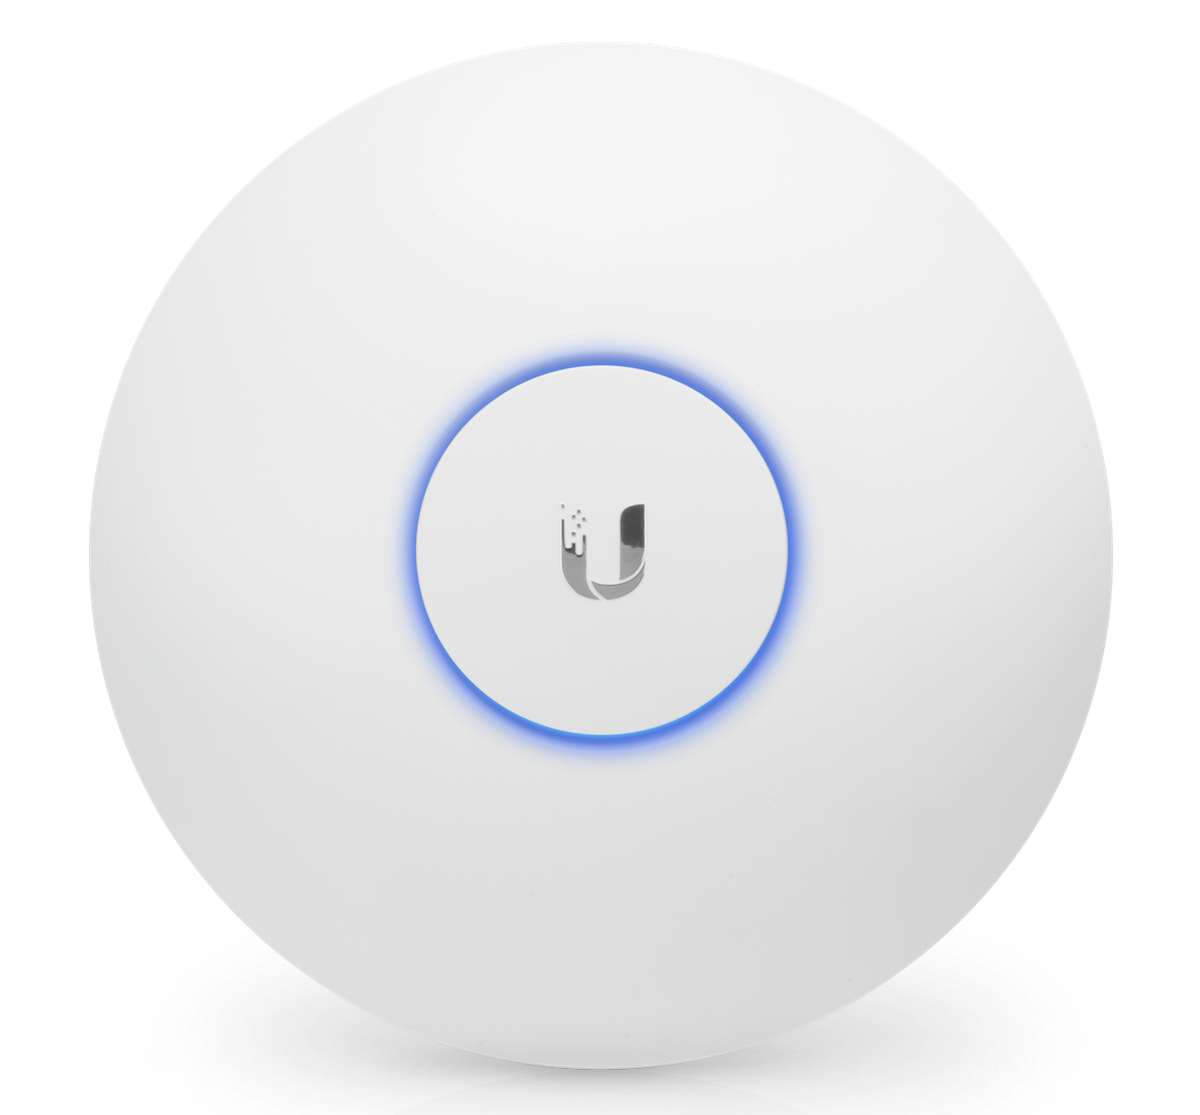 Unify AC - An Elegant Wifi Solution